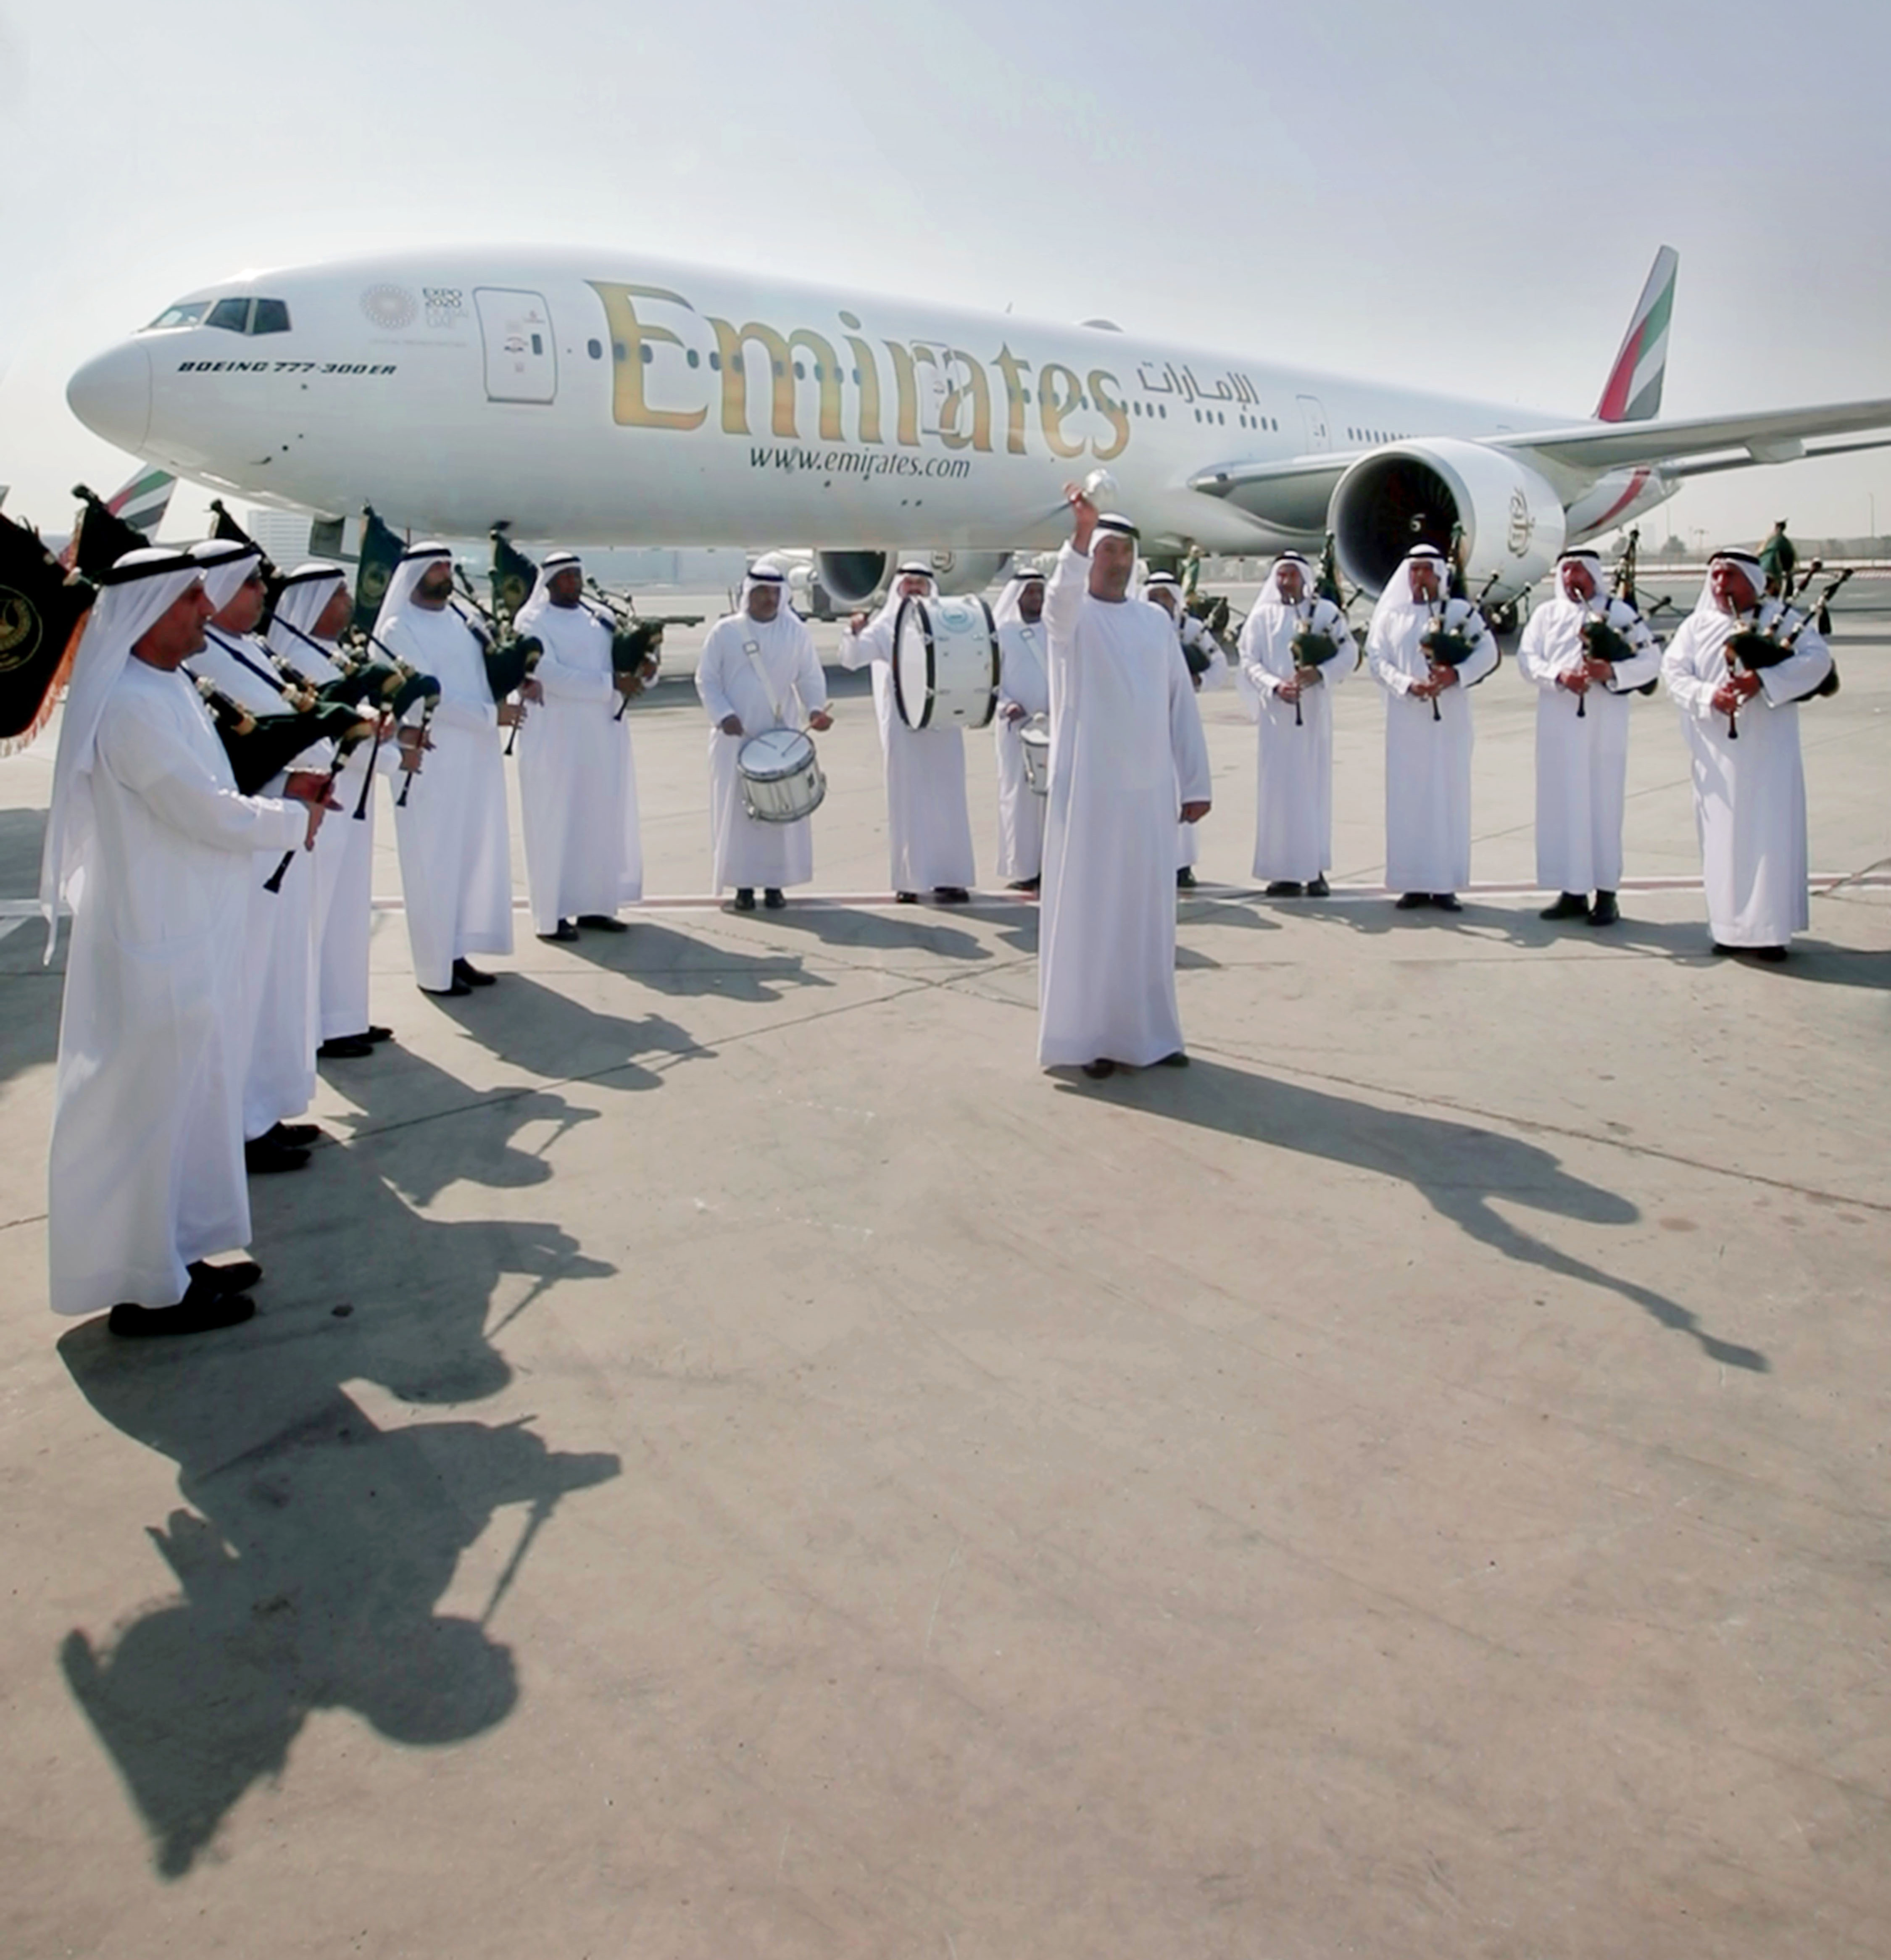 The Dubai Police Band gives Emirates flight EK23 a send-off with a Scottish flavour.